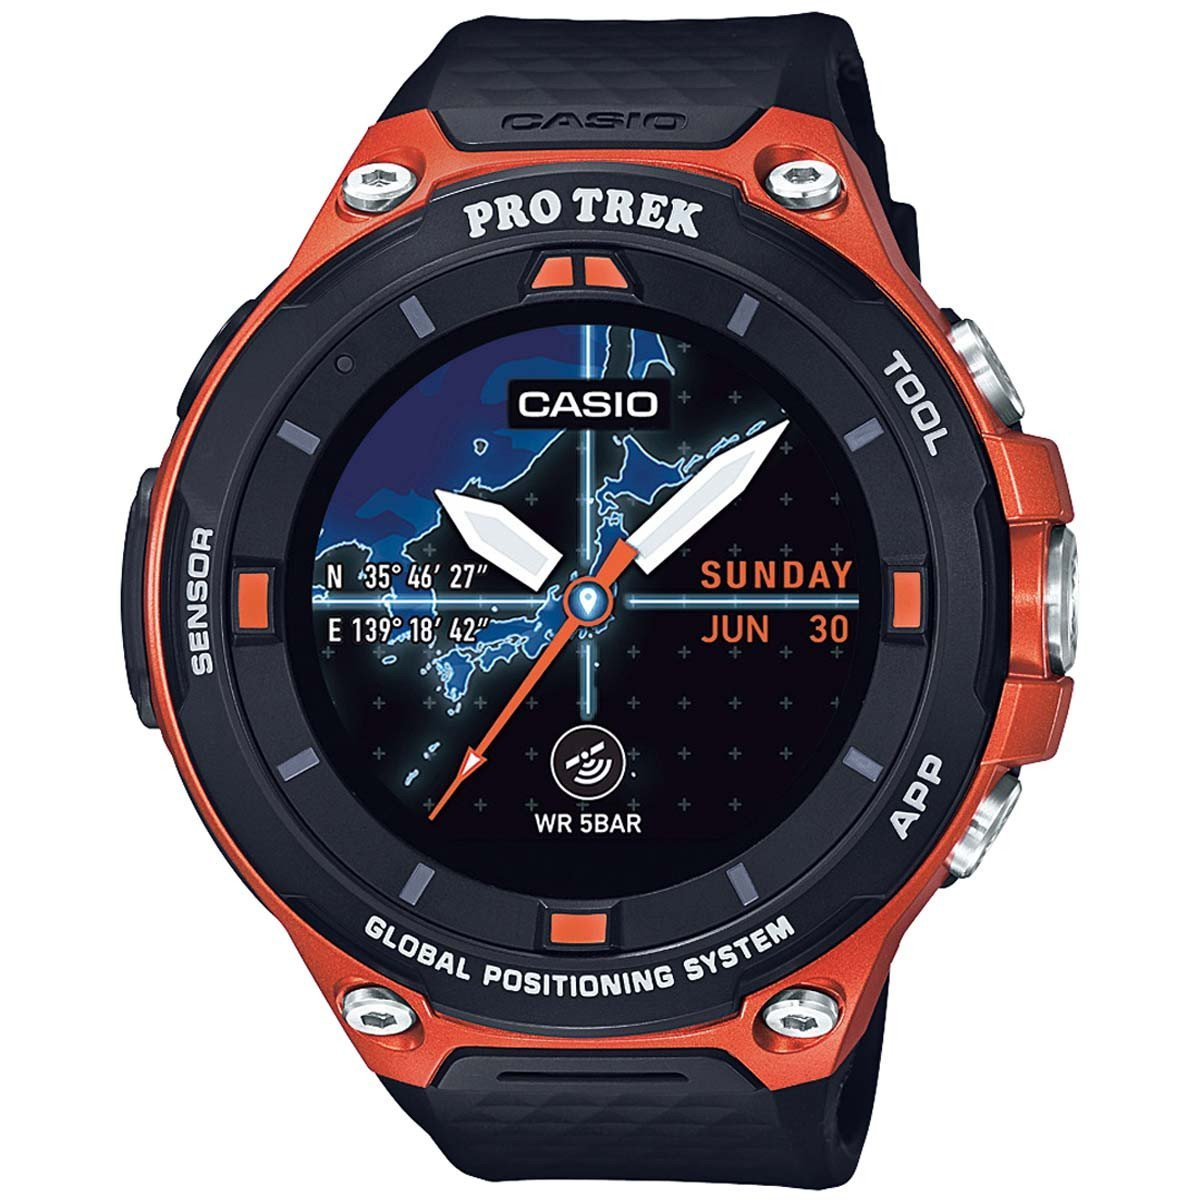 Casio Men's 'Pro Trek' Quartz Resin Outdoor Smartwatch  CzWLo